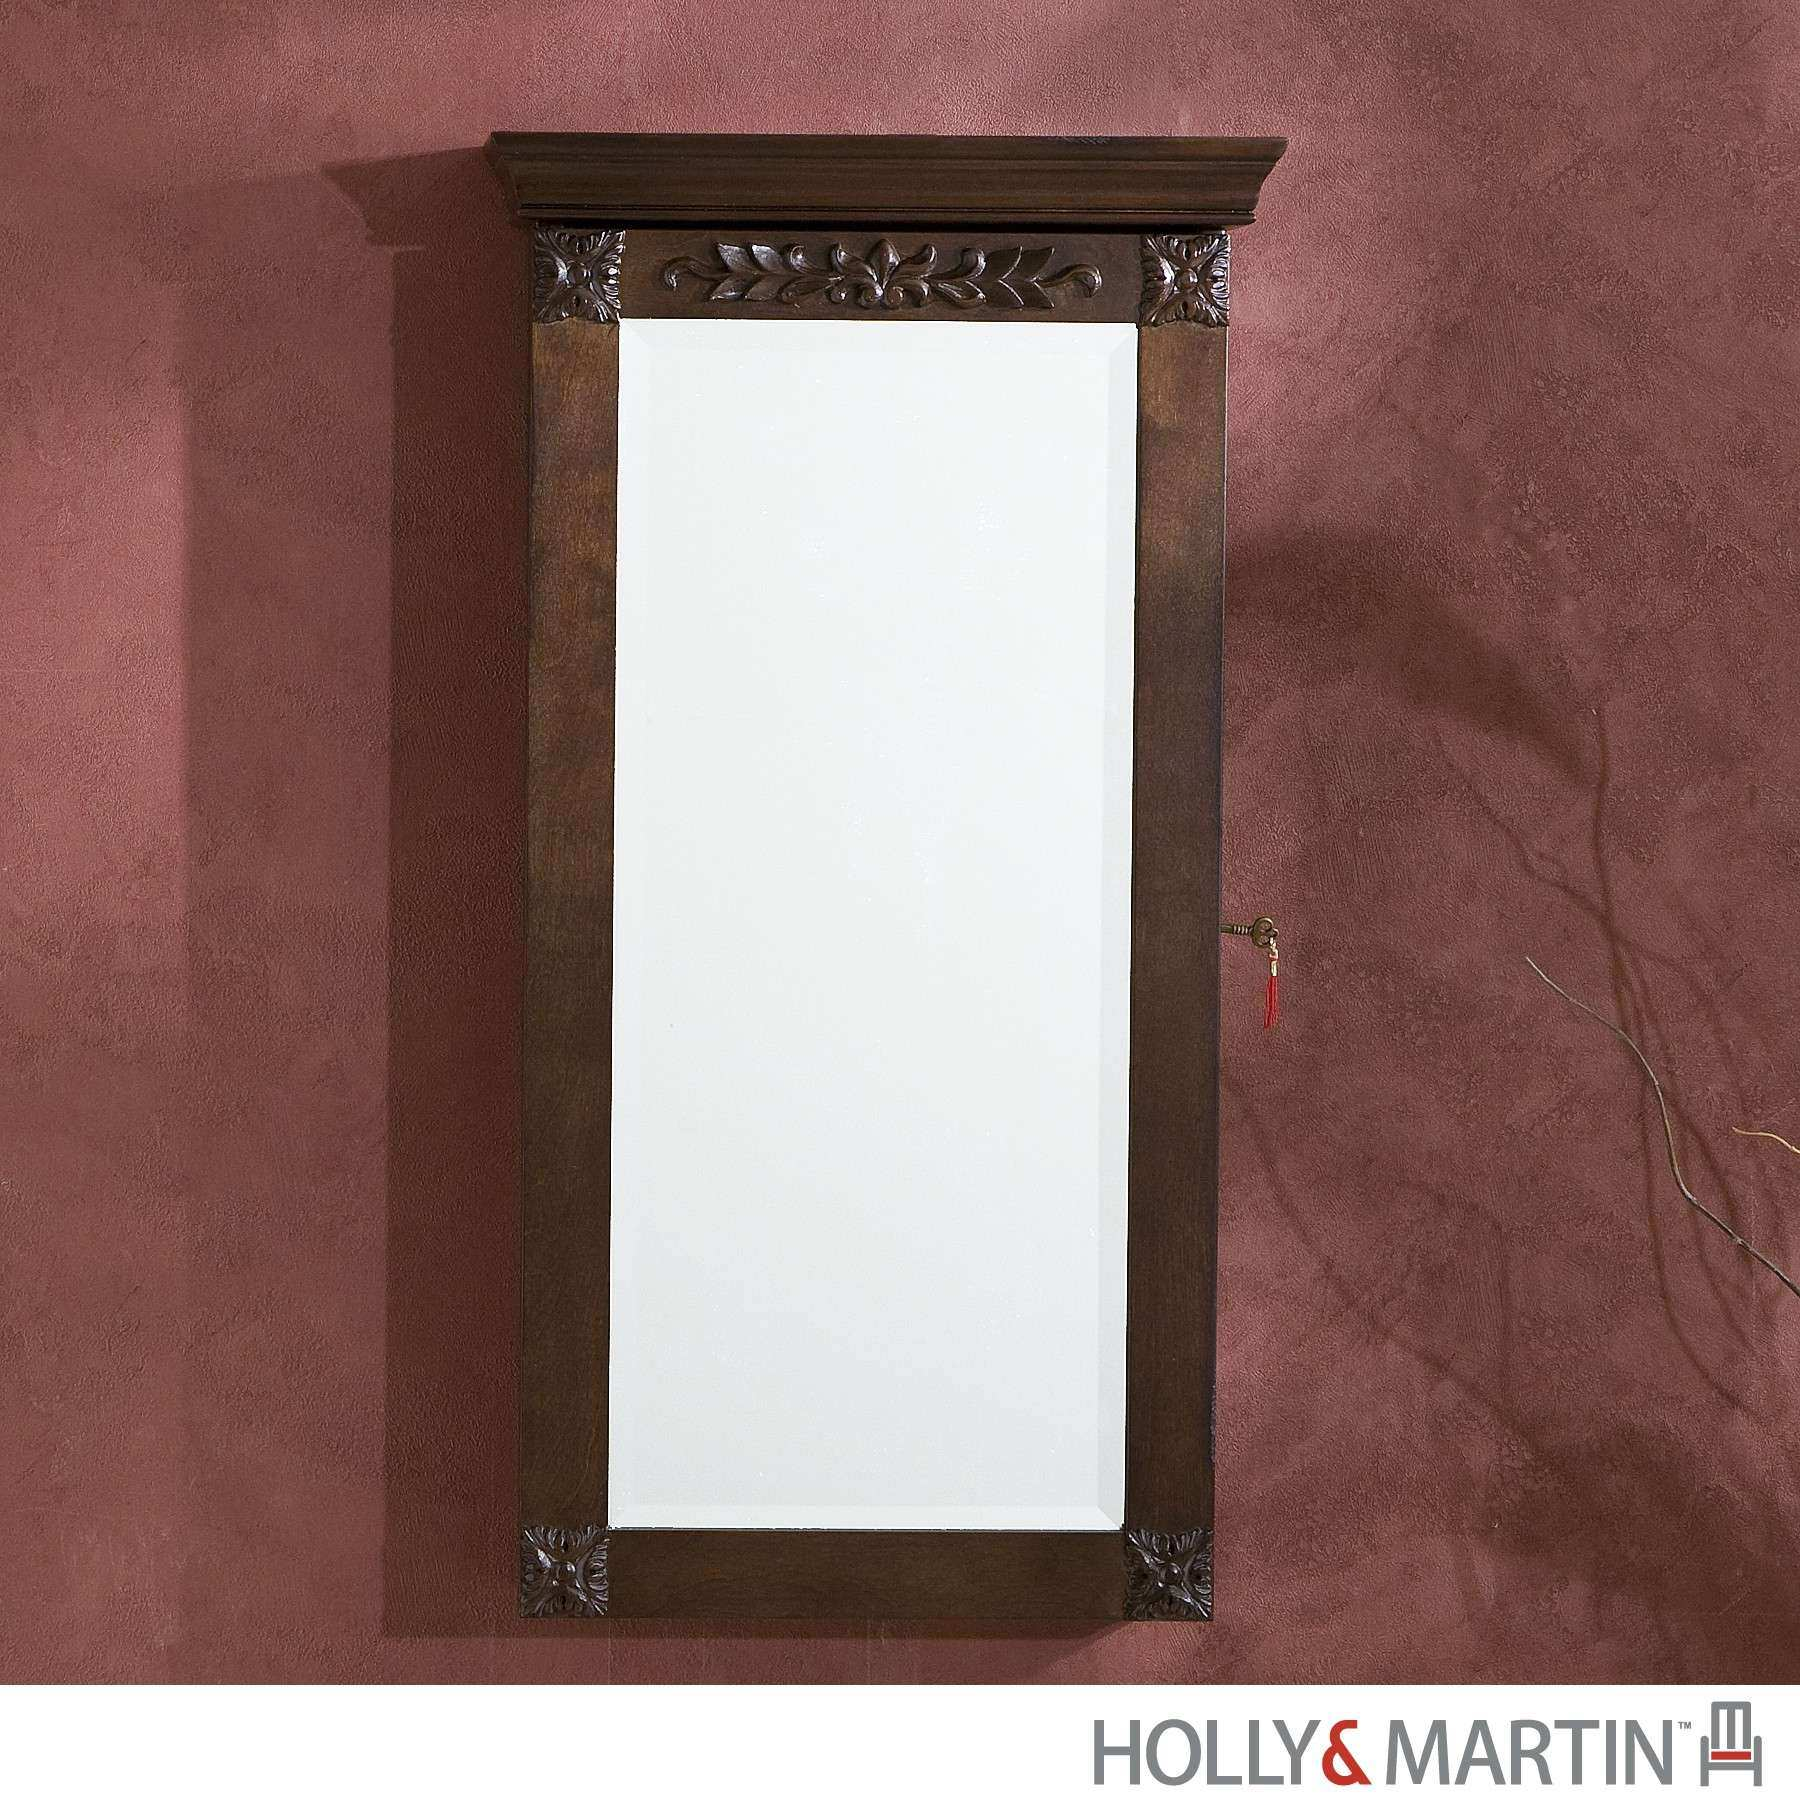 Holly & Martin Vivienne Wall Mount Jewelry Armoire 57 248 059 3 12